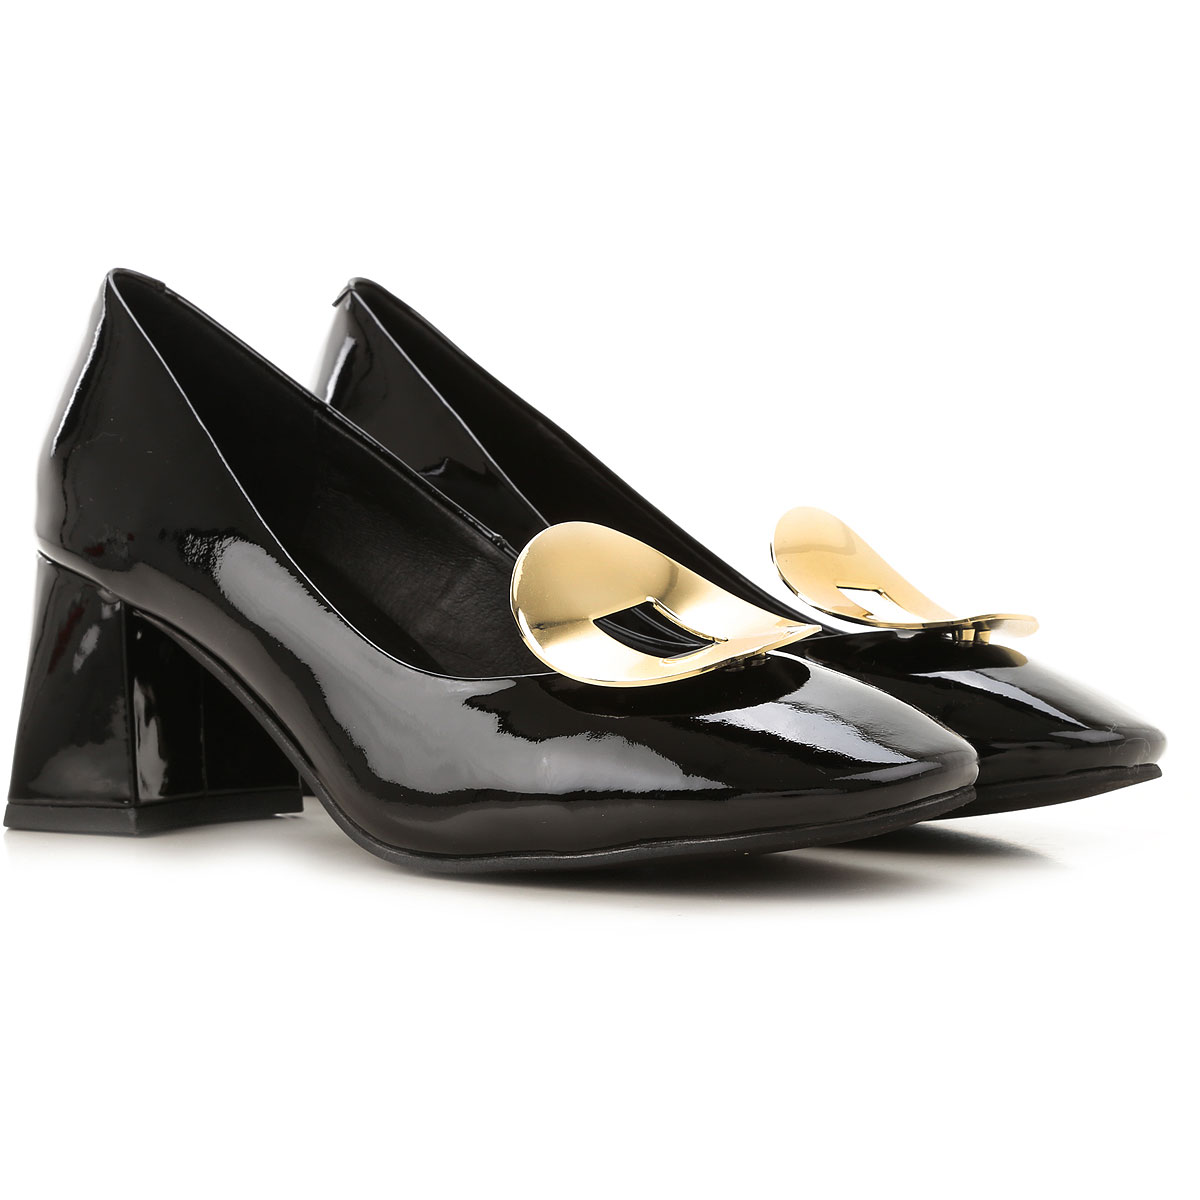 Jeffrey Campbell Pumps & High Heels for Women On Sale, Black, Patent Leather, 2019, 6 7 9